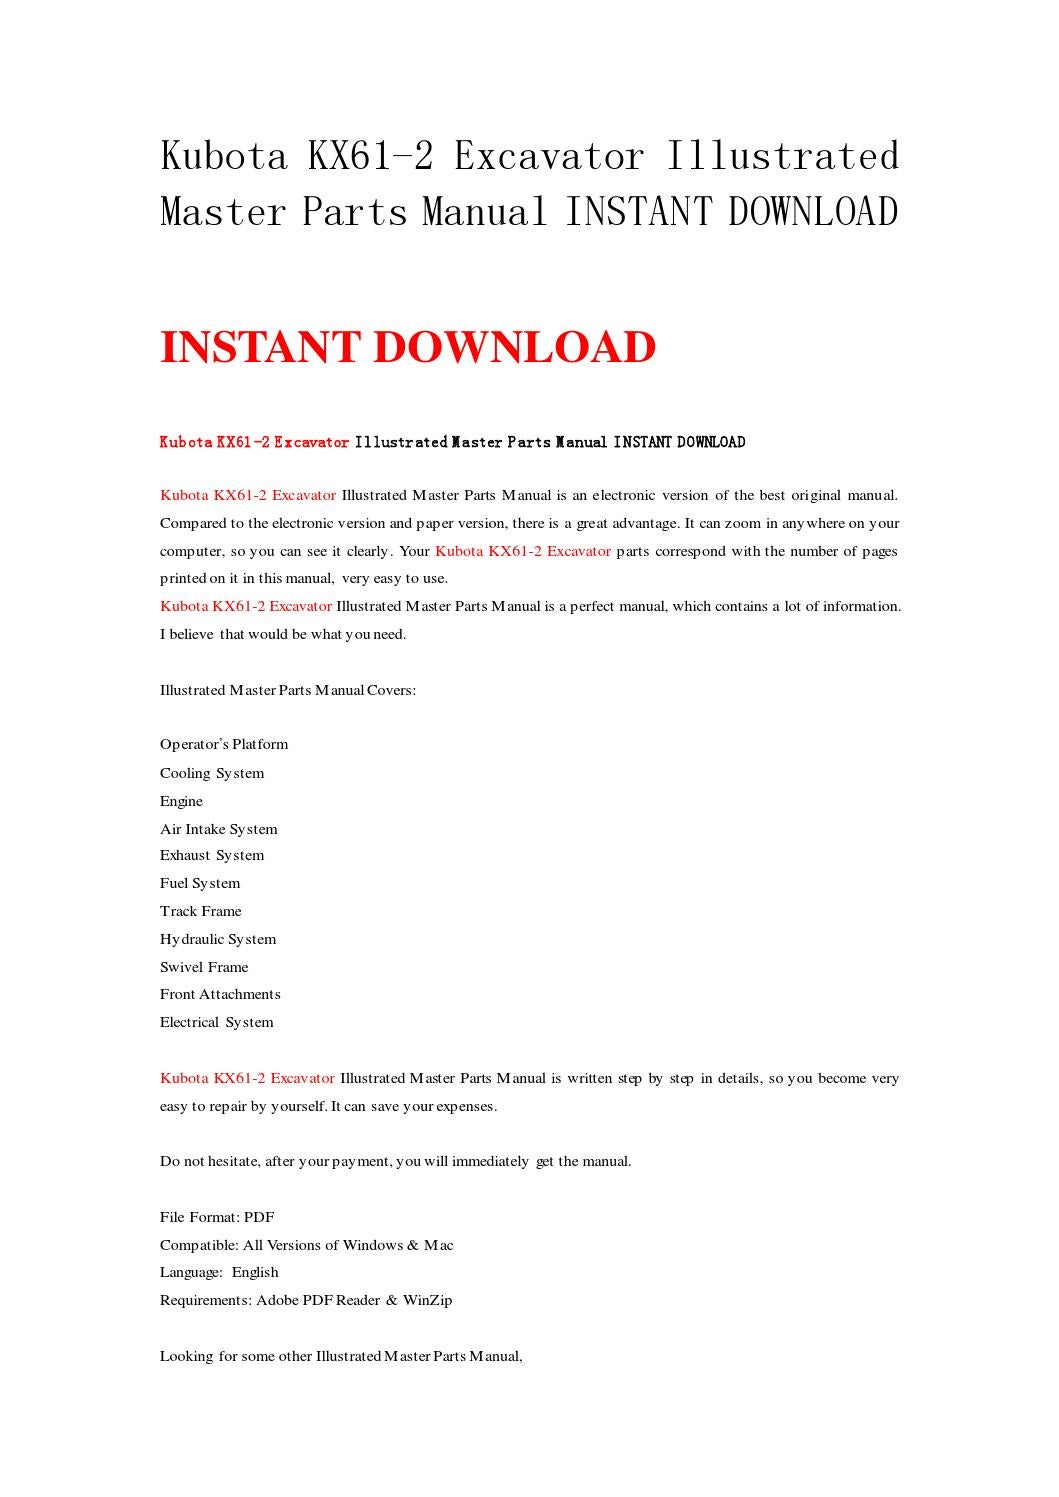 Kubota kx61 2 excavator illustrated master parts manual instant download by  nwqrez - issuu